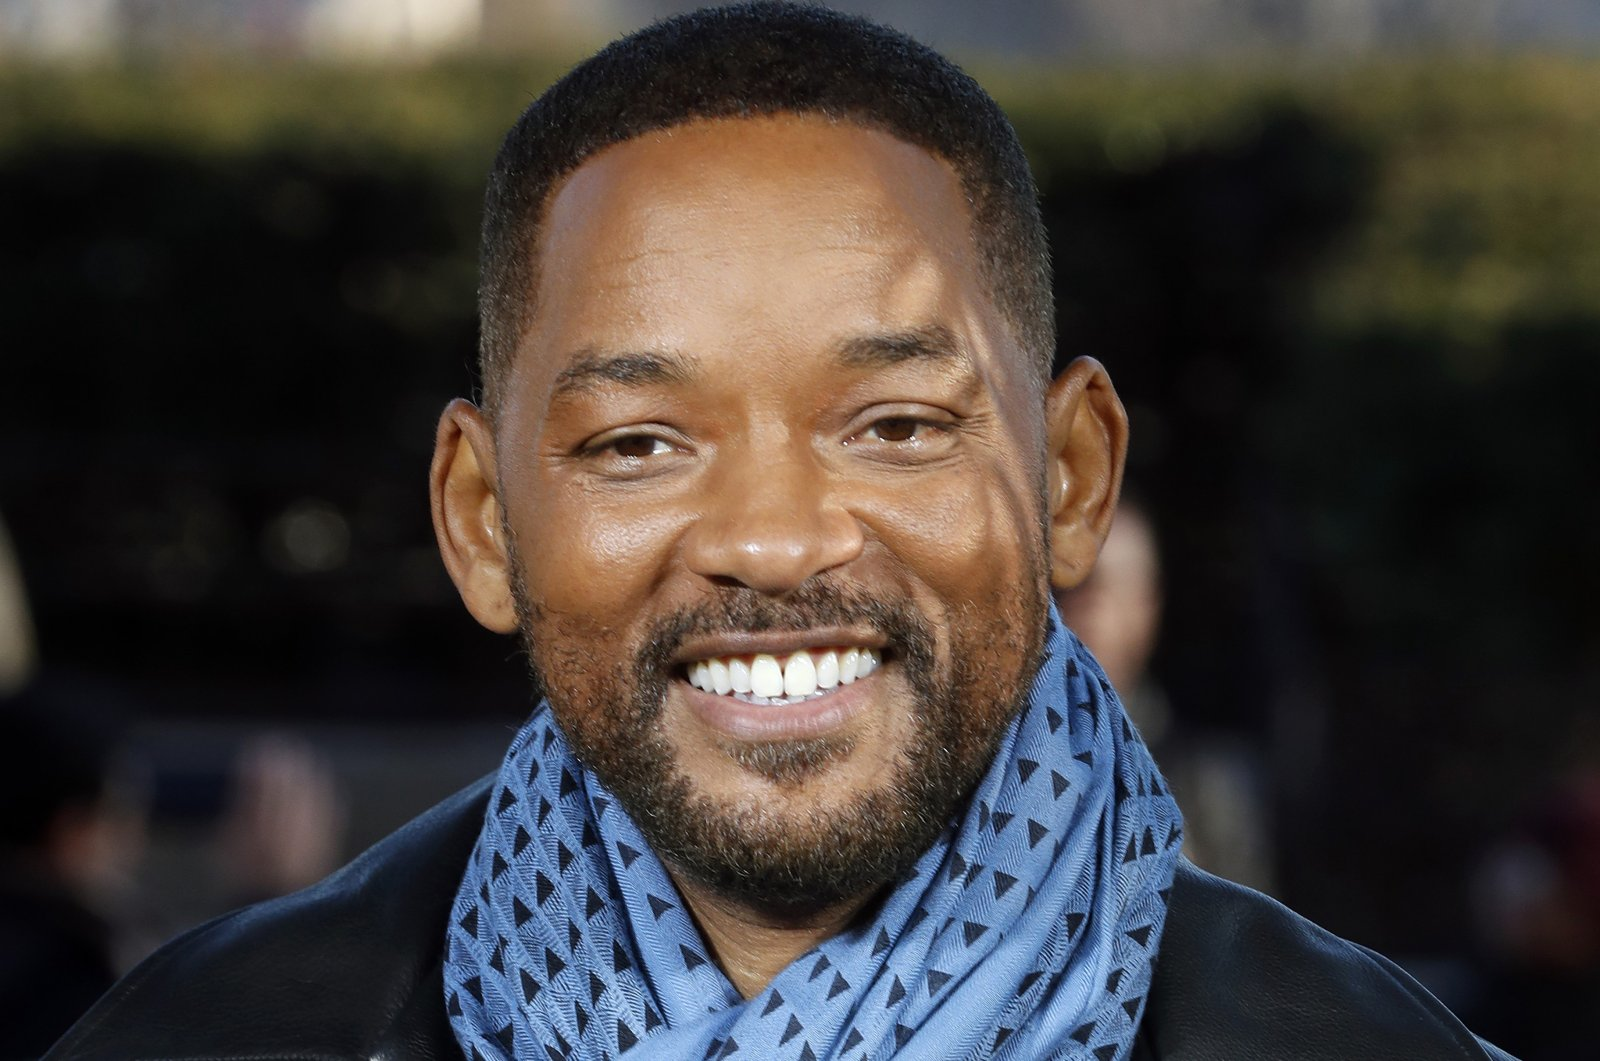 """U.S actor Will Smith poses for photographers during the photo call of """"Bad Boys for Life,"""" in Paris, France, Jan. 6, 2020. (AP Photo)"""